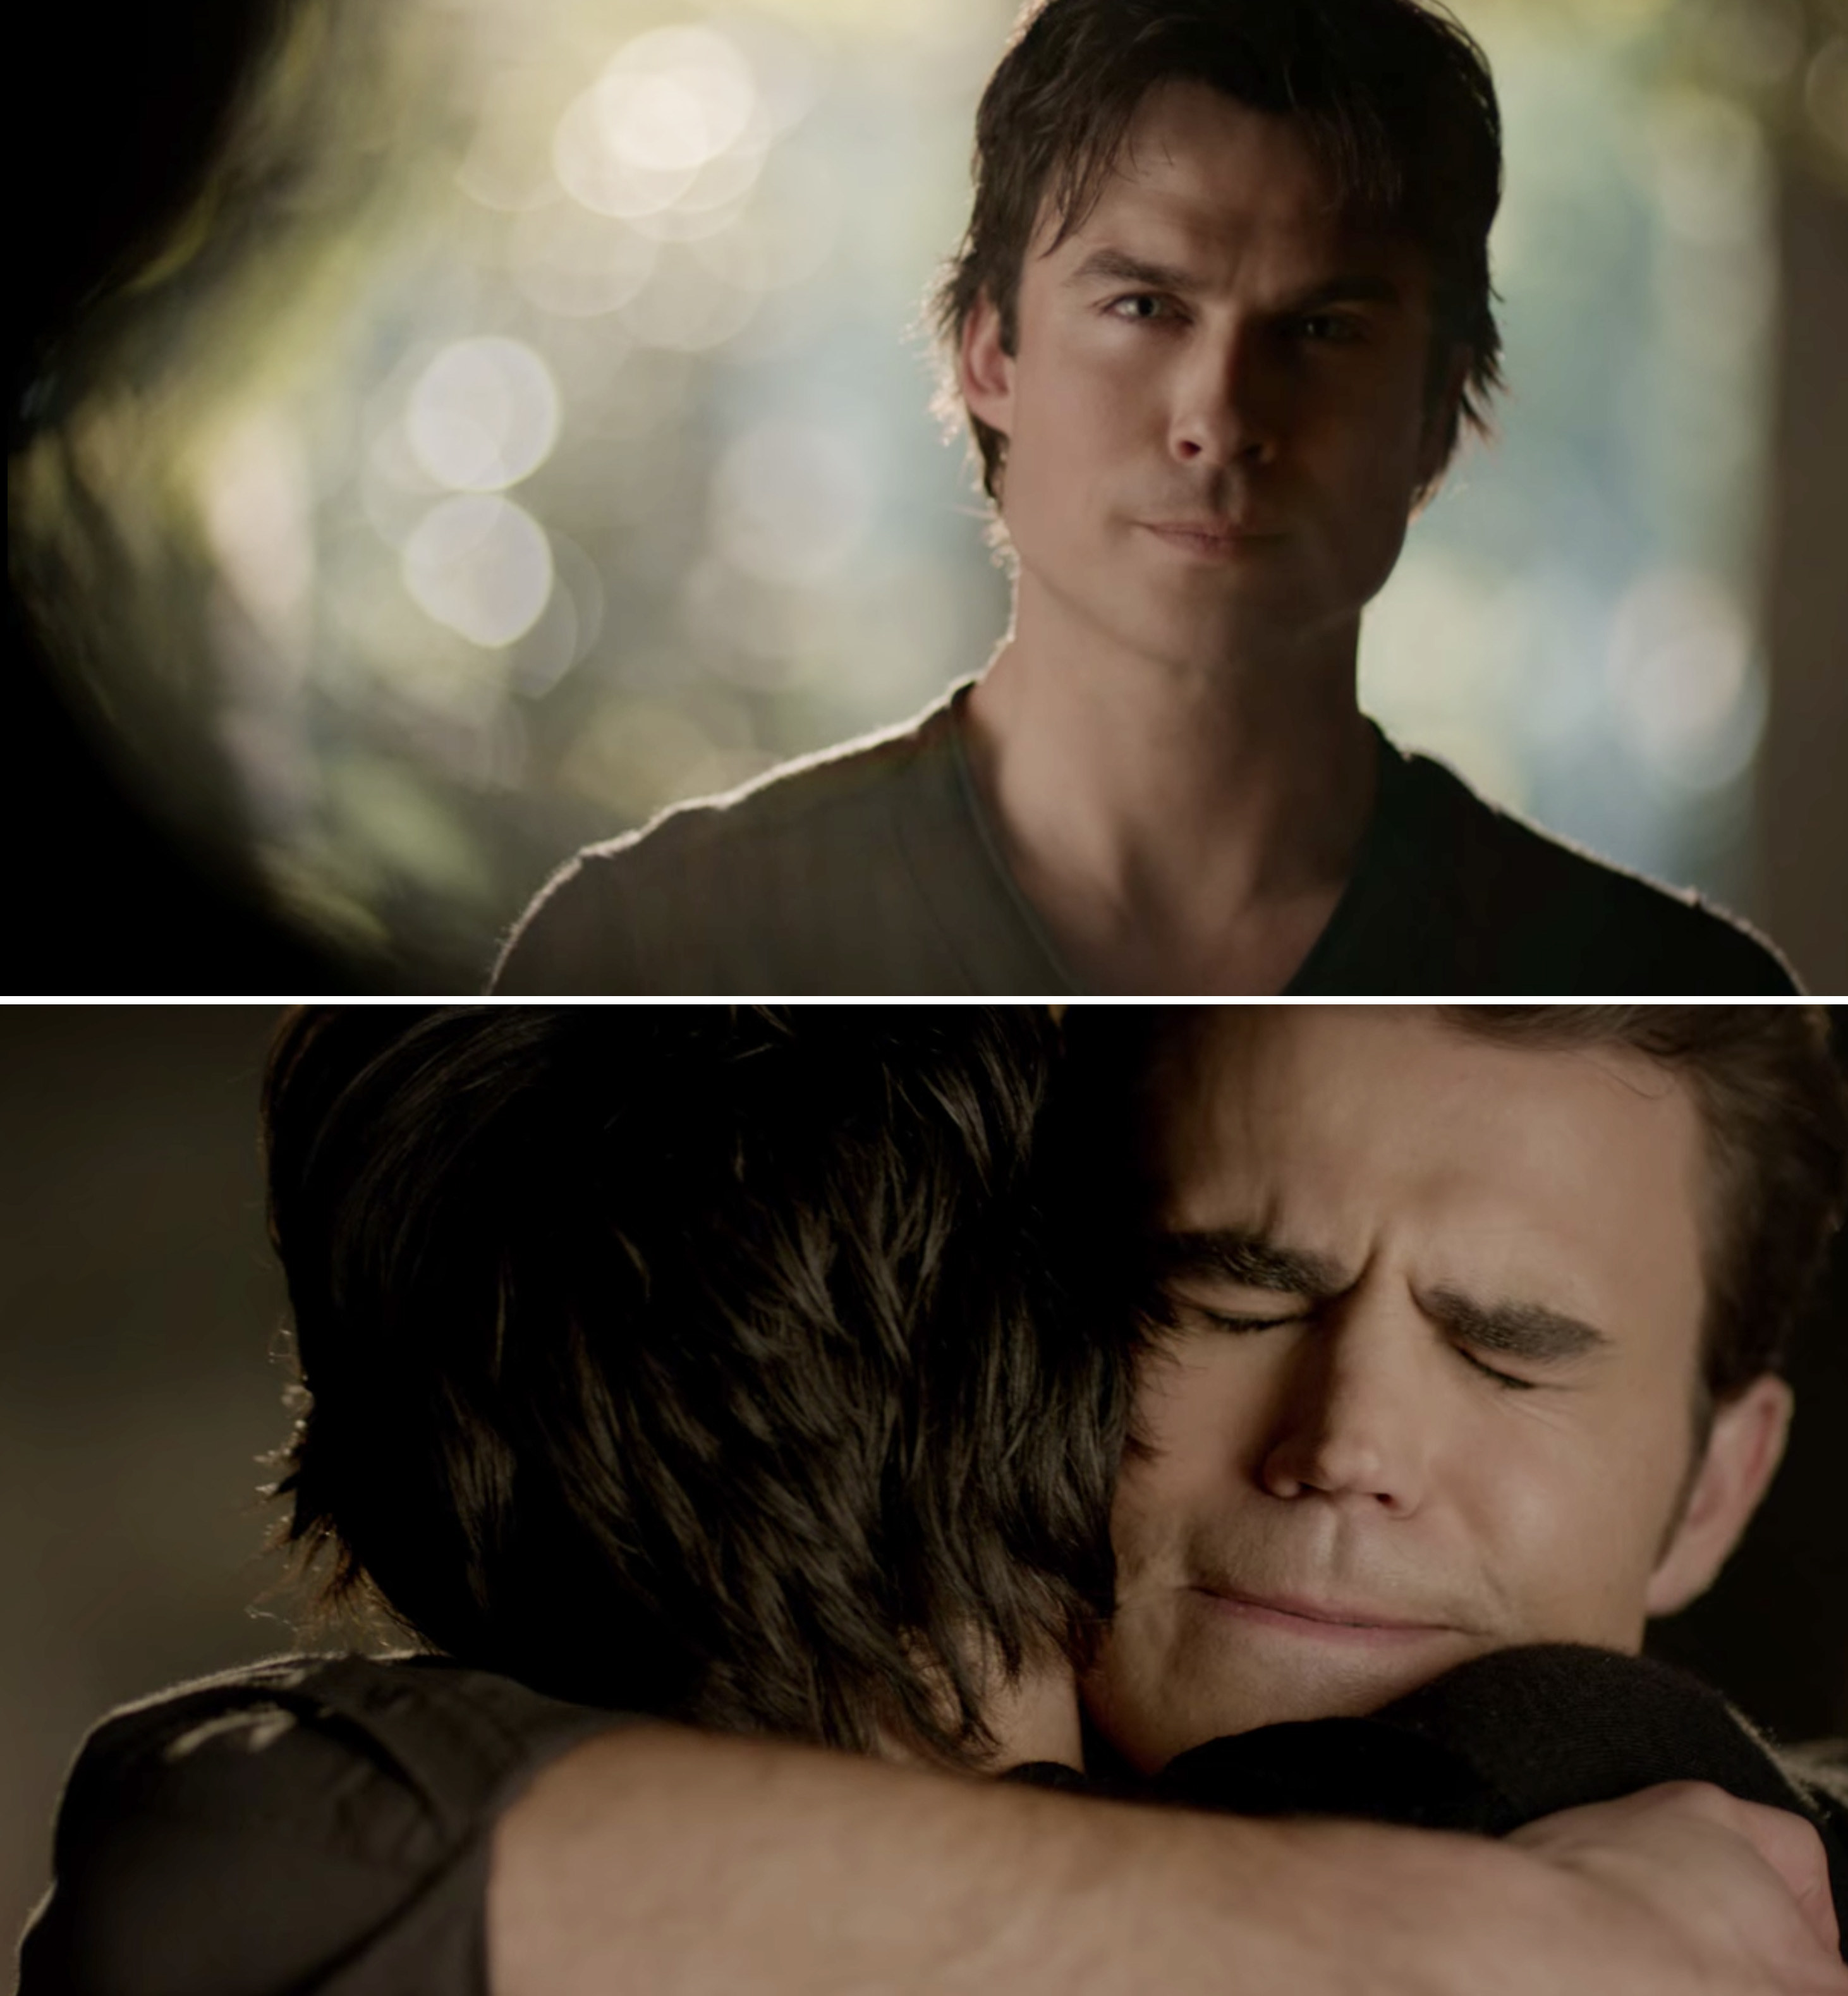 Damon and Stefan reuniting and hugging